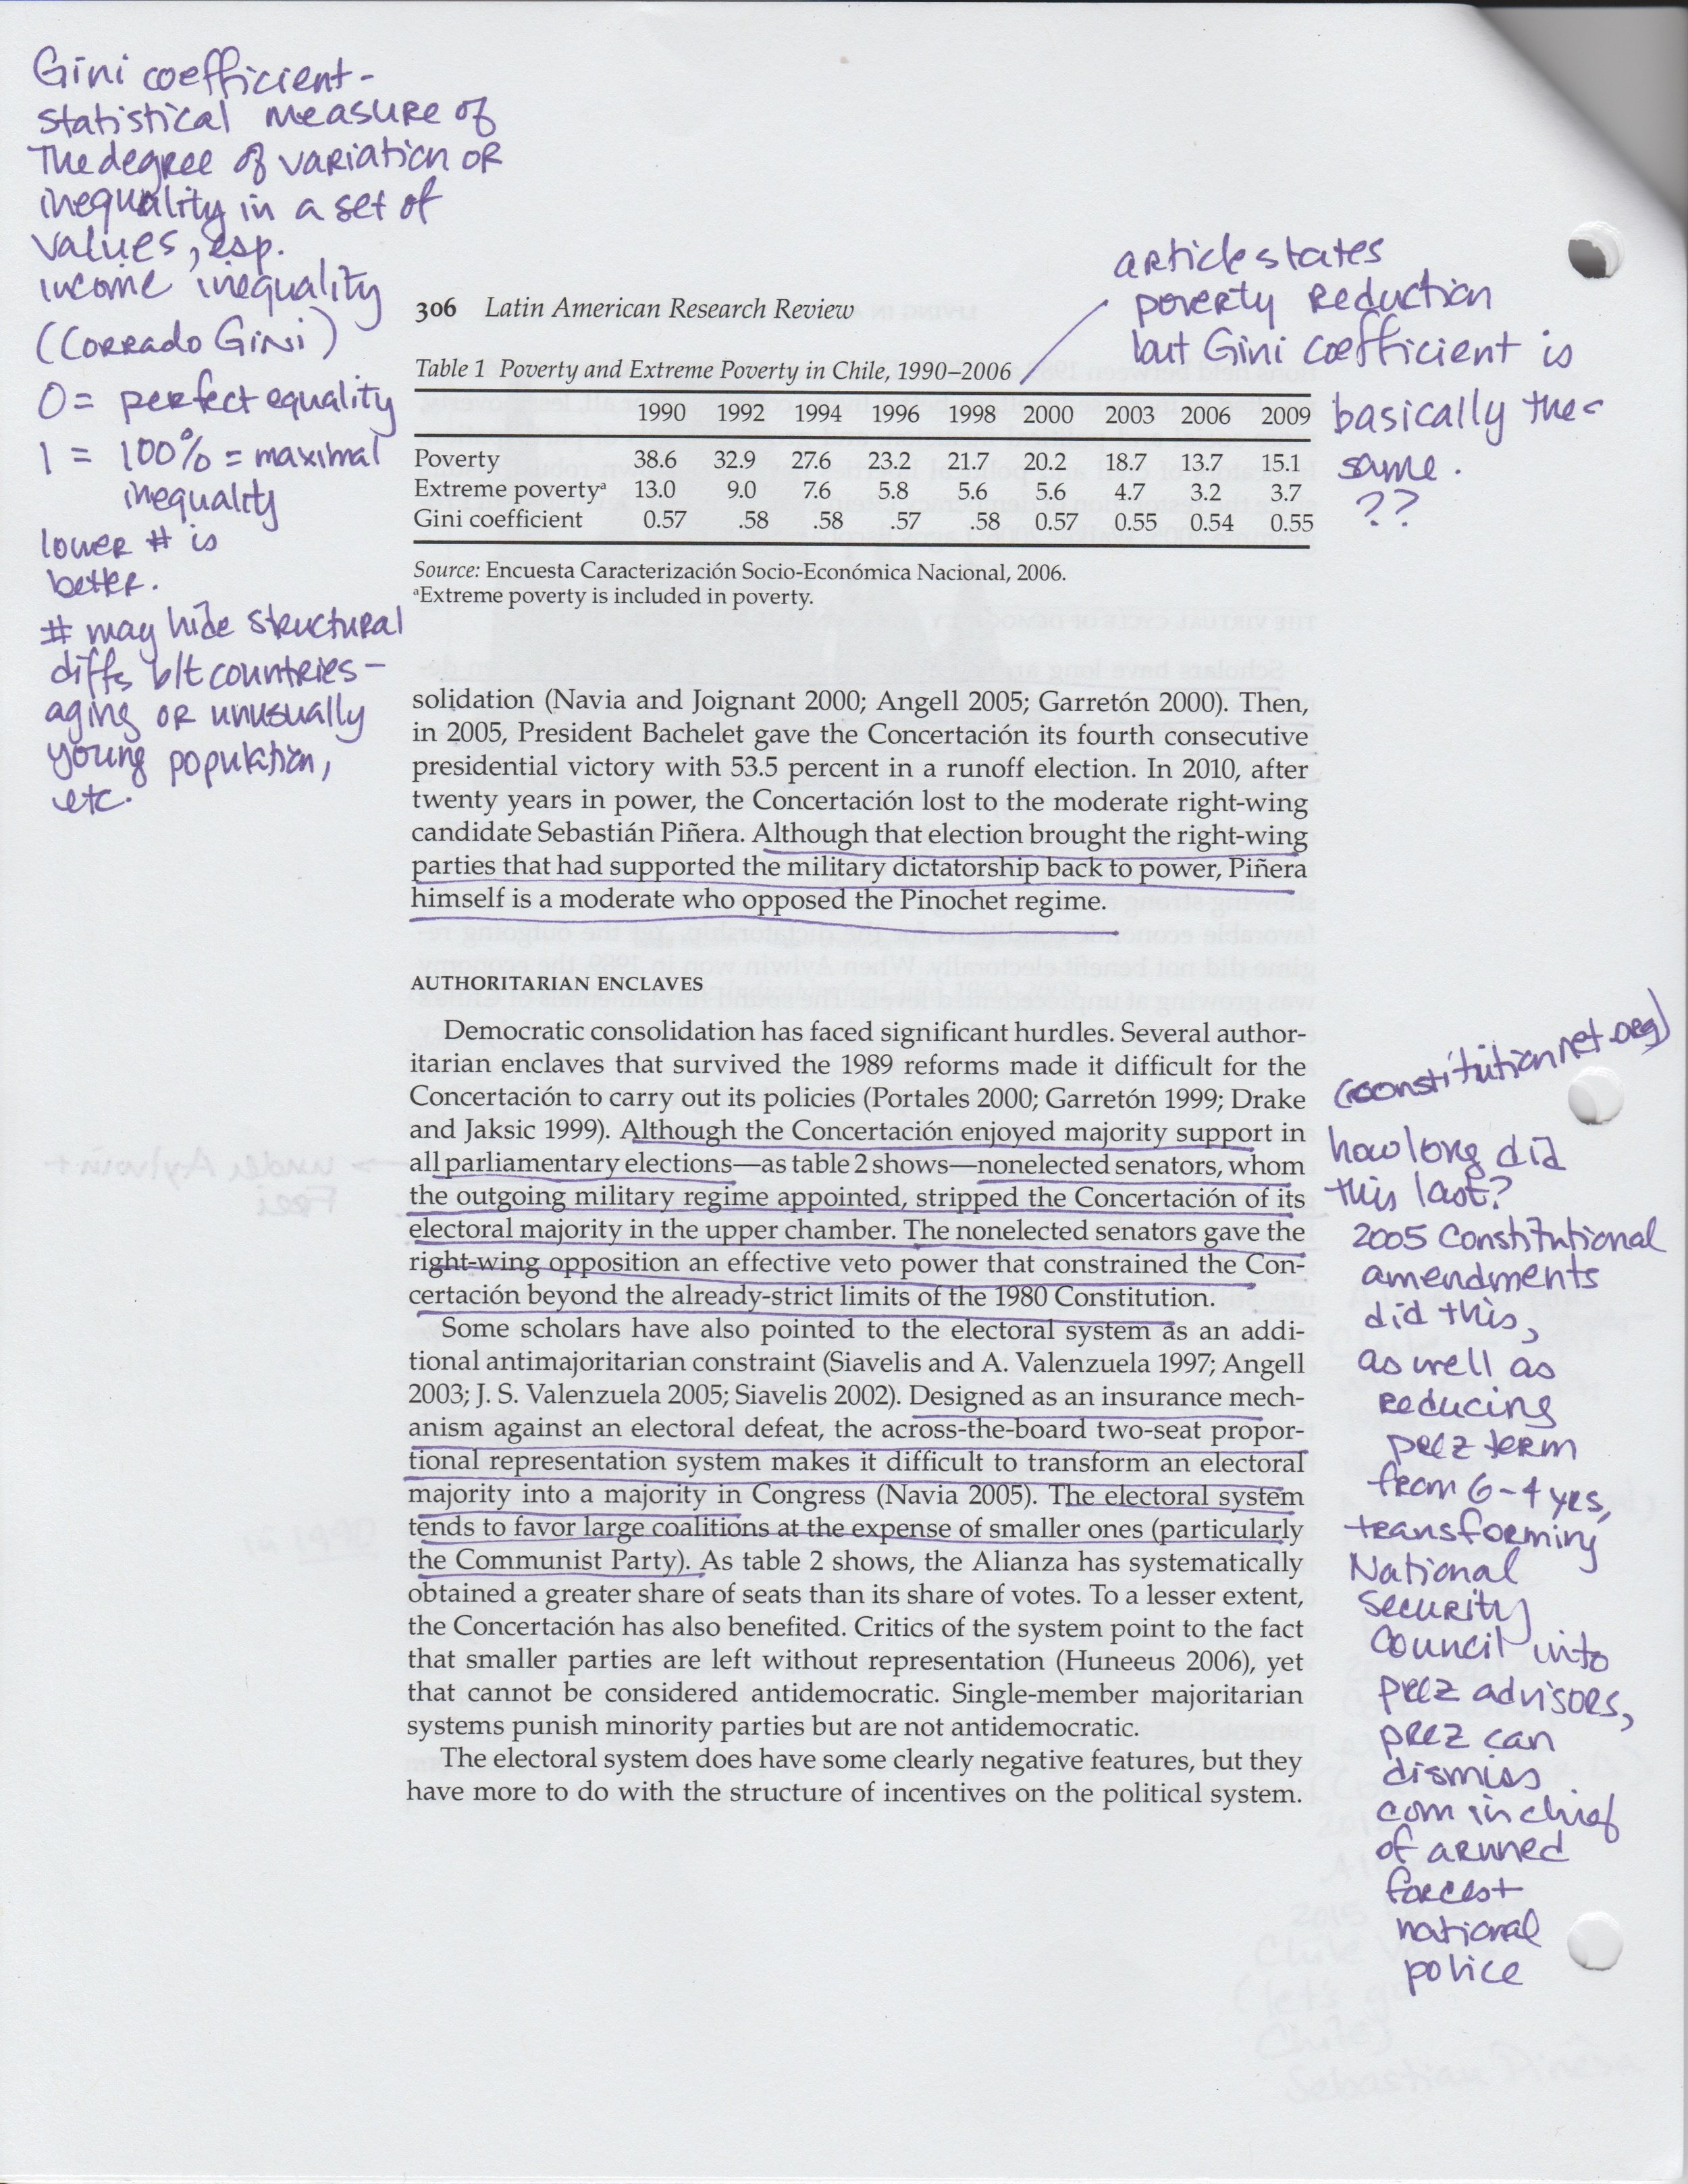 - Printed journal article - notes were written on paper and include info looked up on topics I needed more information on.